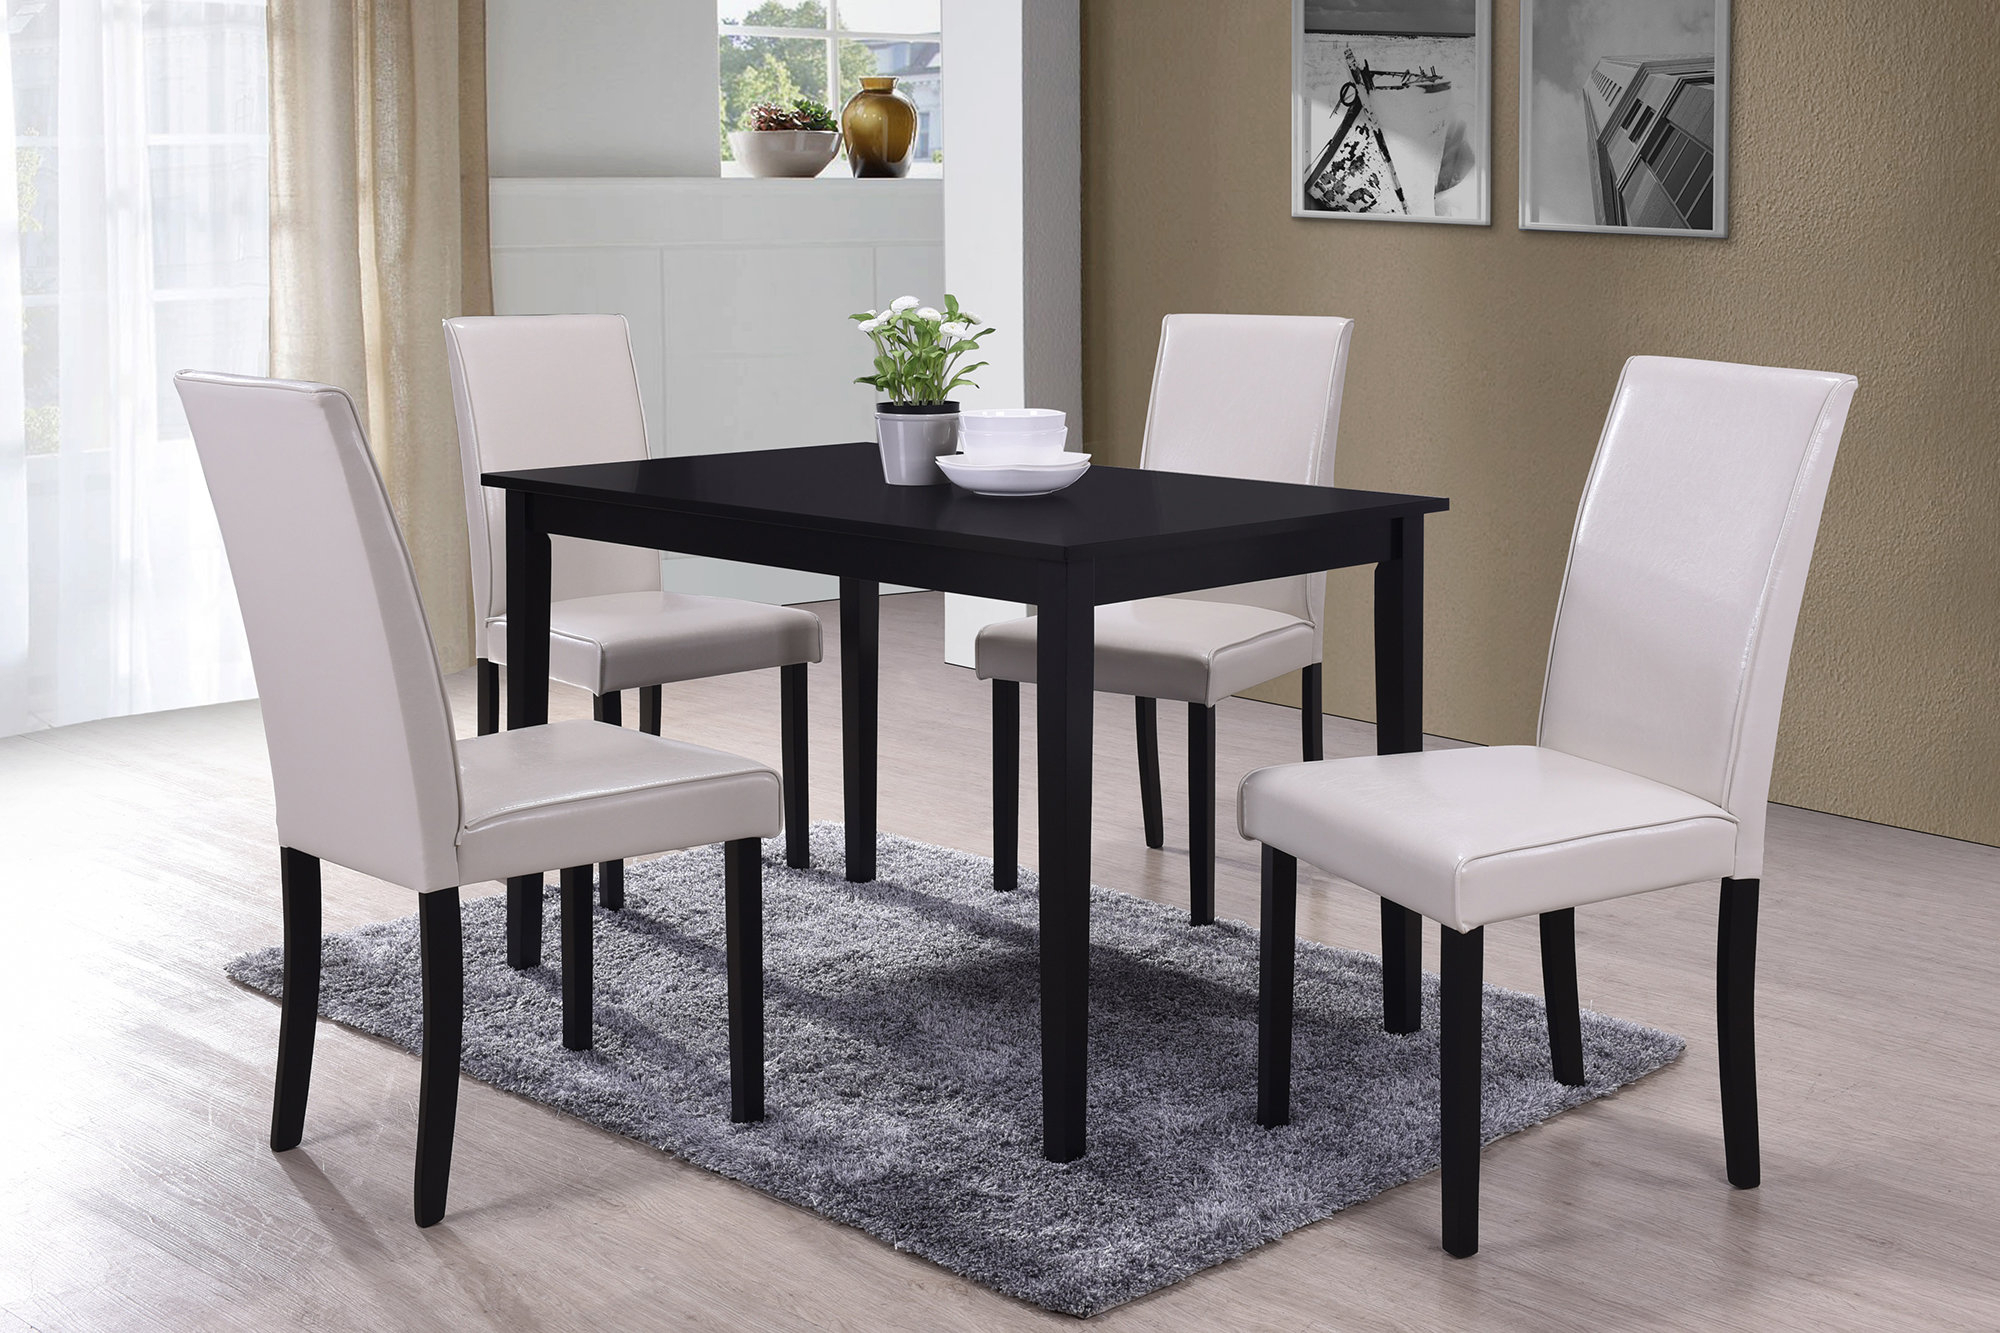 Widely Used Noyes 5 Piece Dining Sets With Macneil 5 Piece Dining Set (View 19 of 20)